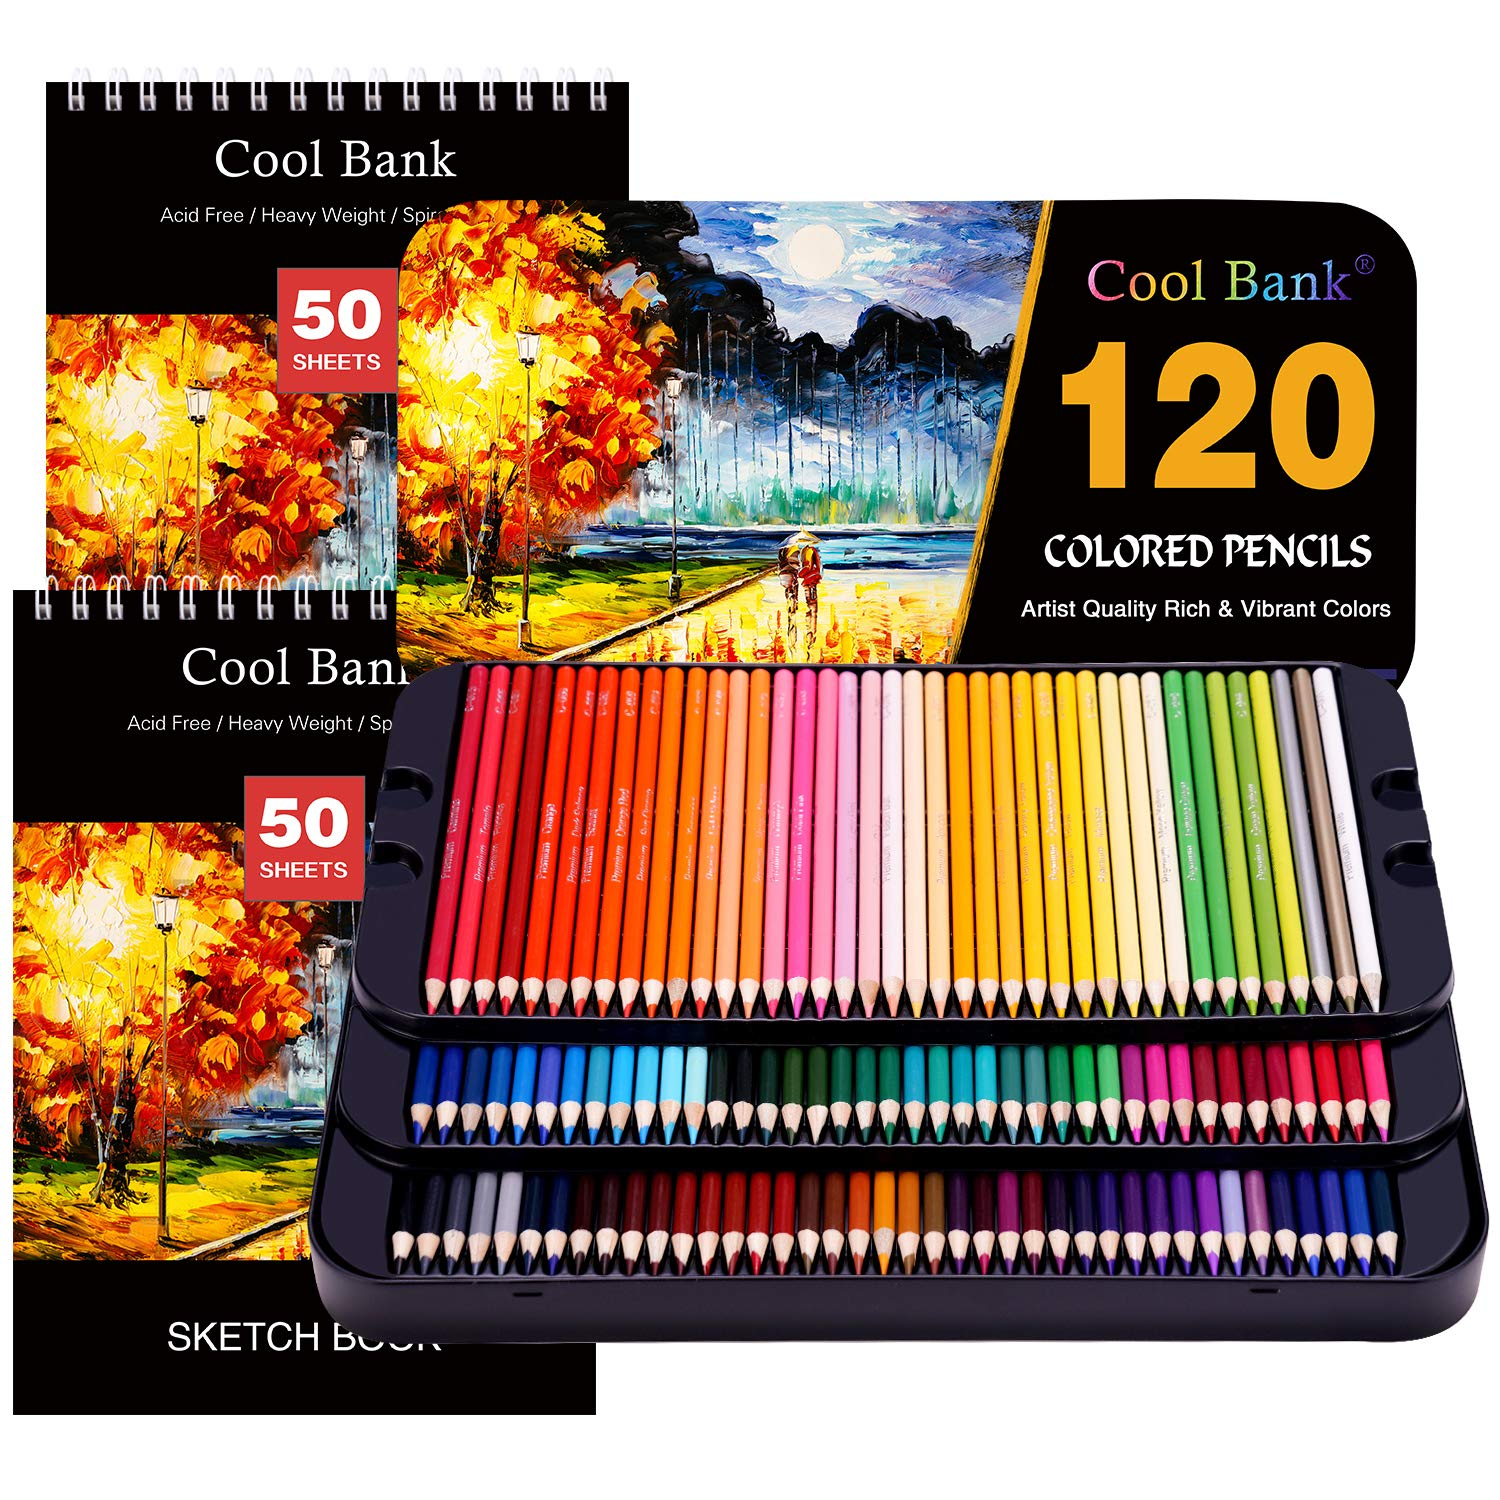 120 Professional Colored Pencils, Artist Pencils Set with 2x50 Page Drawing Pad(A4) for Coloring Books, Premium Artist Soft Series Lead with Vibrant Colors for Sketching,Shading & Coloring in Tin Box